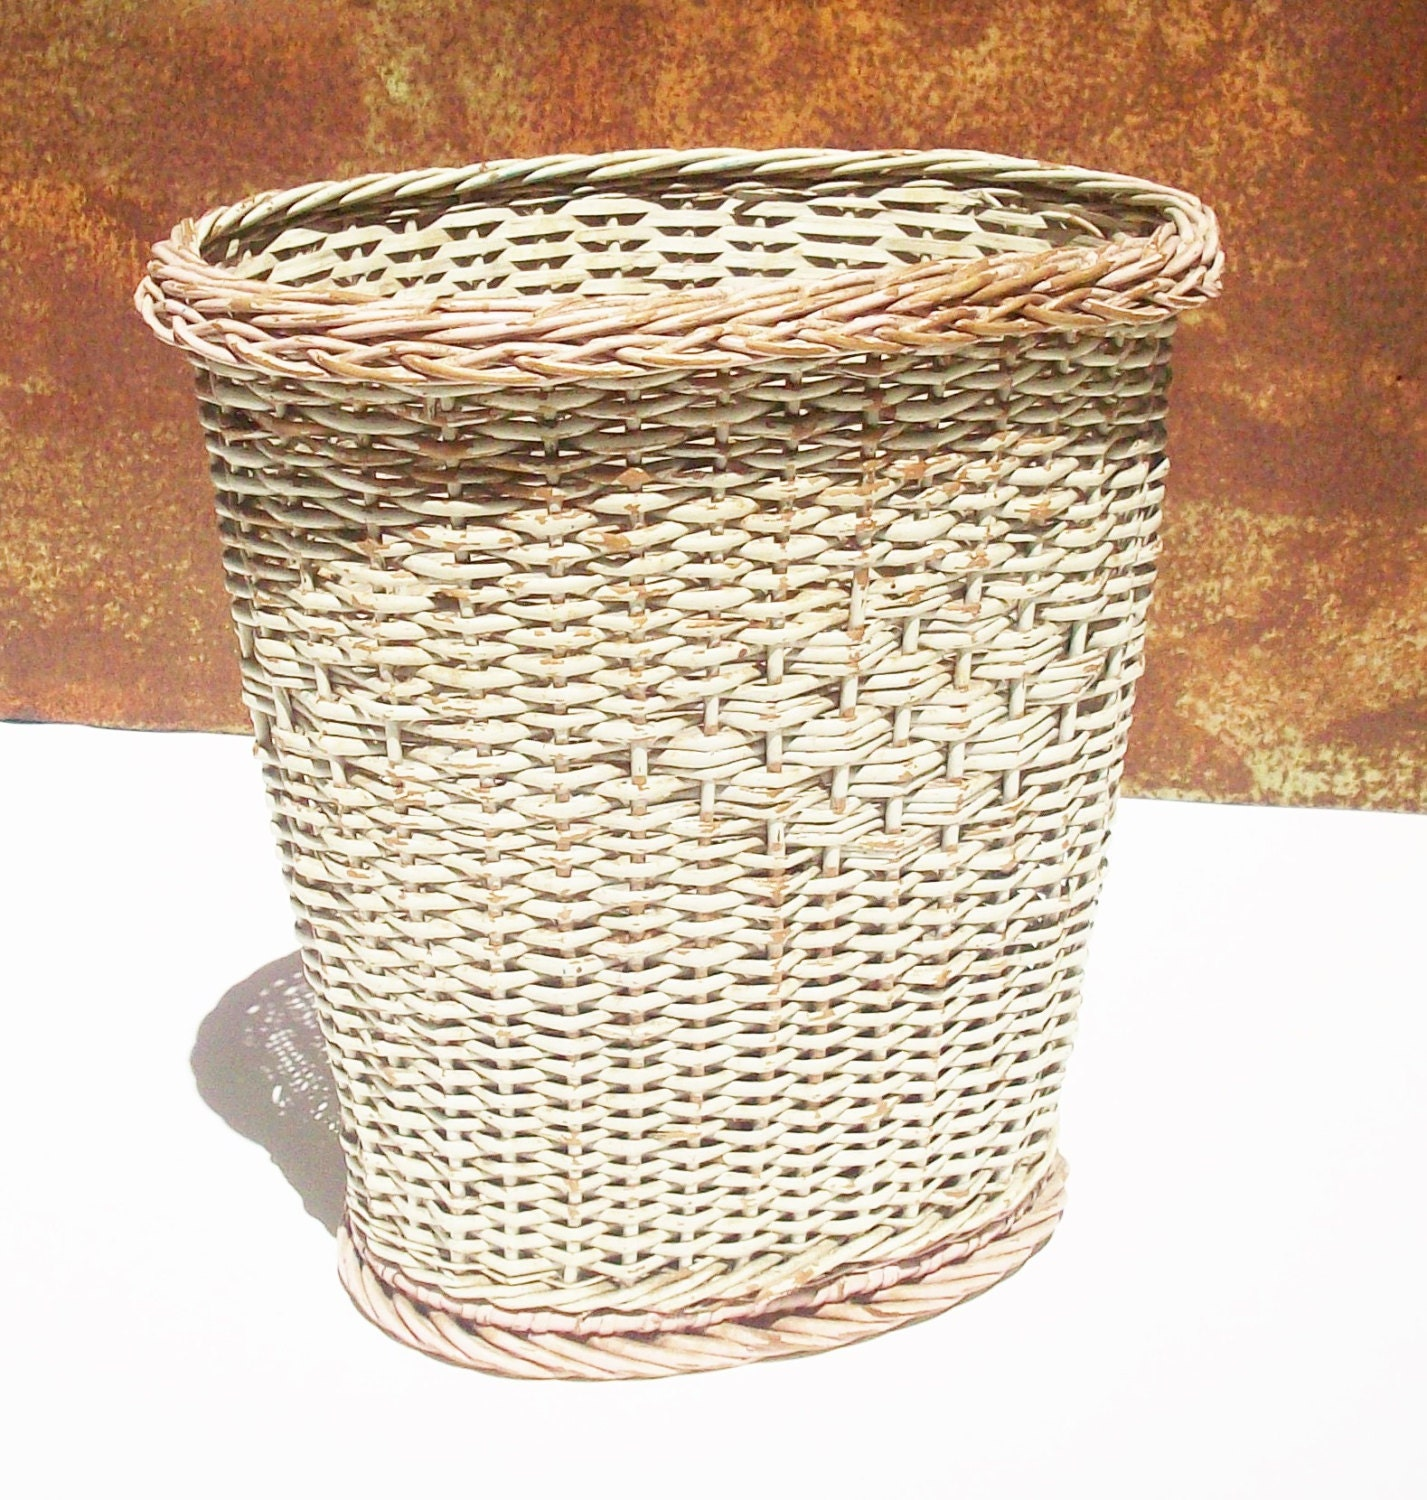 Wicker trash basket original condition vintage bathroom - Wicker trash basket ...